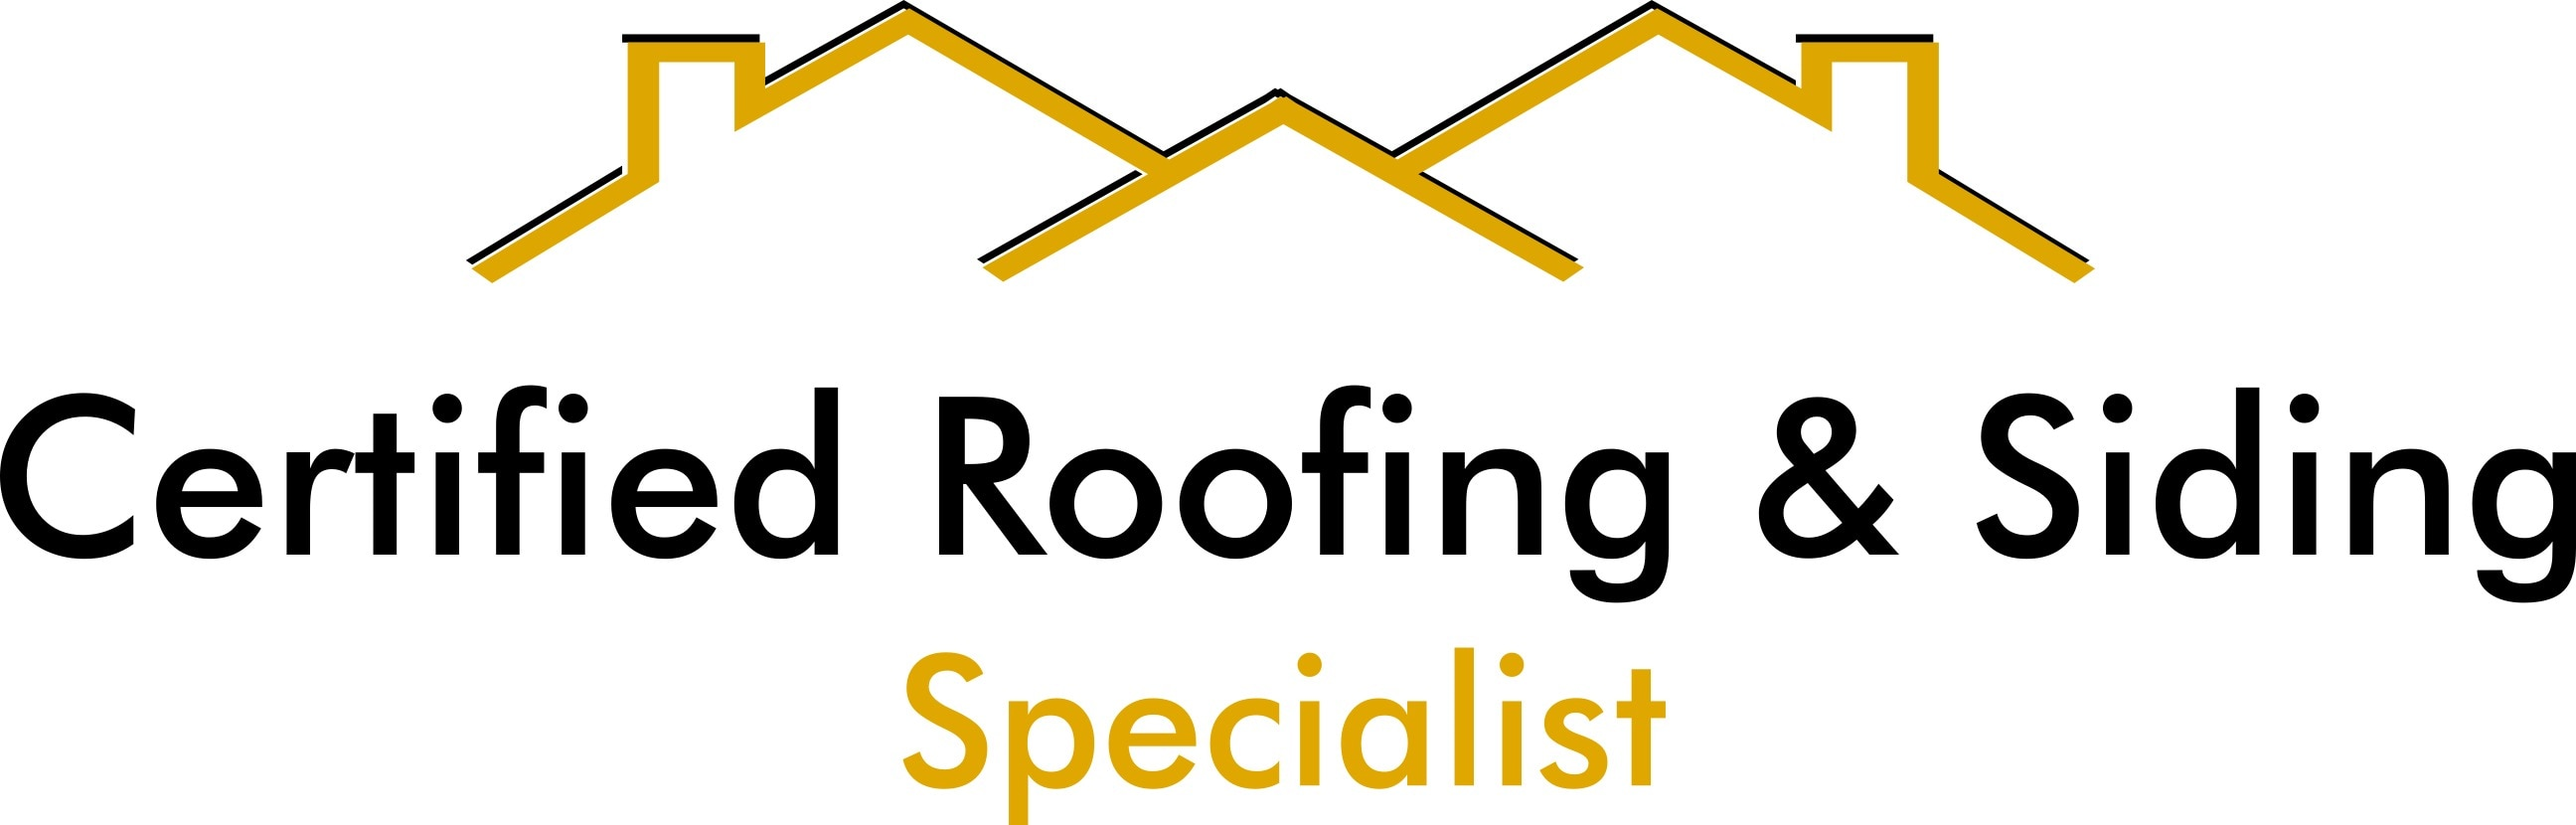 Certified Roofing & Siding Specialist LLC logo